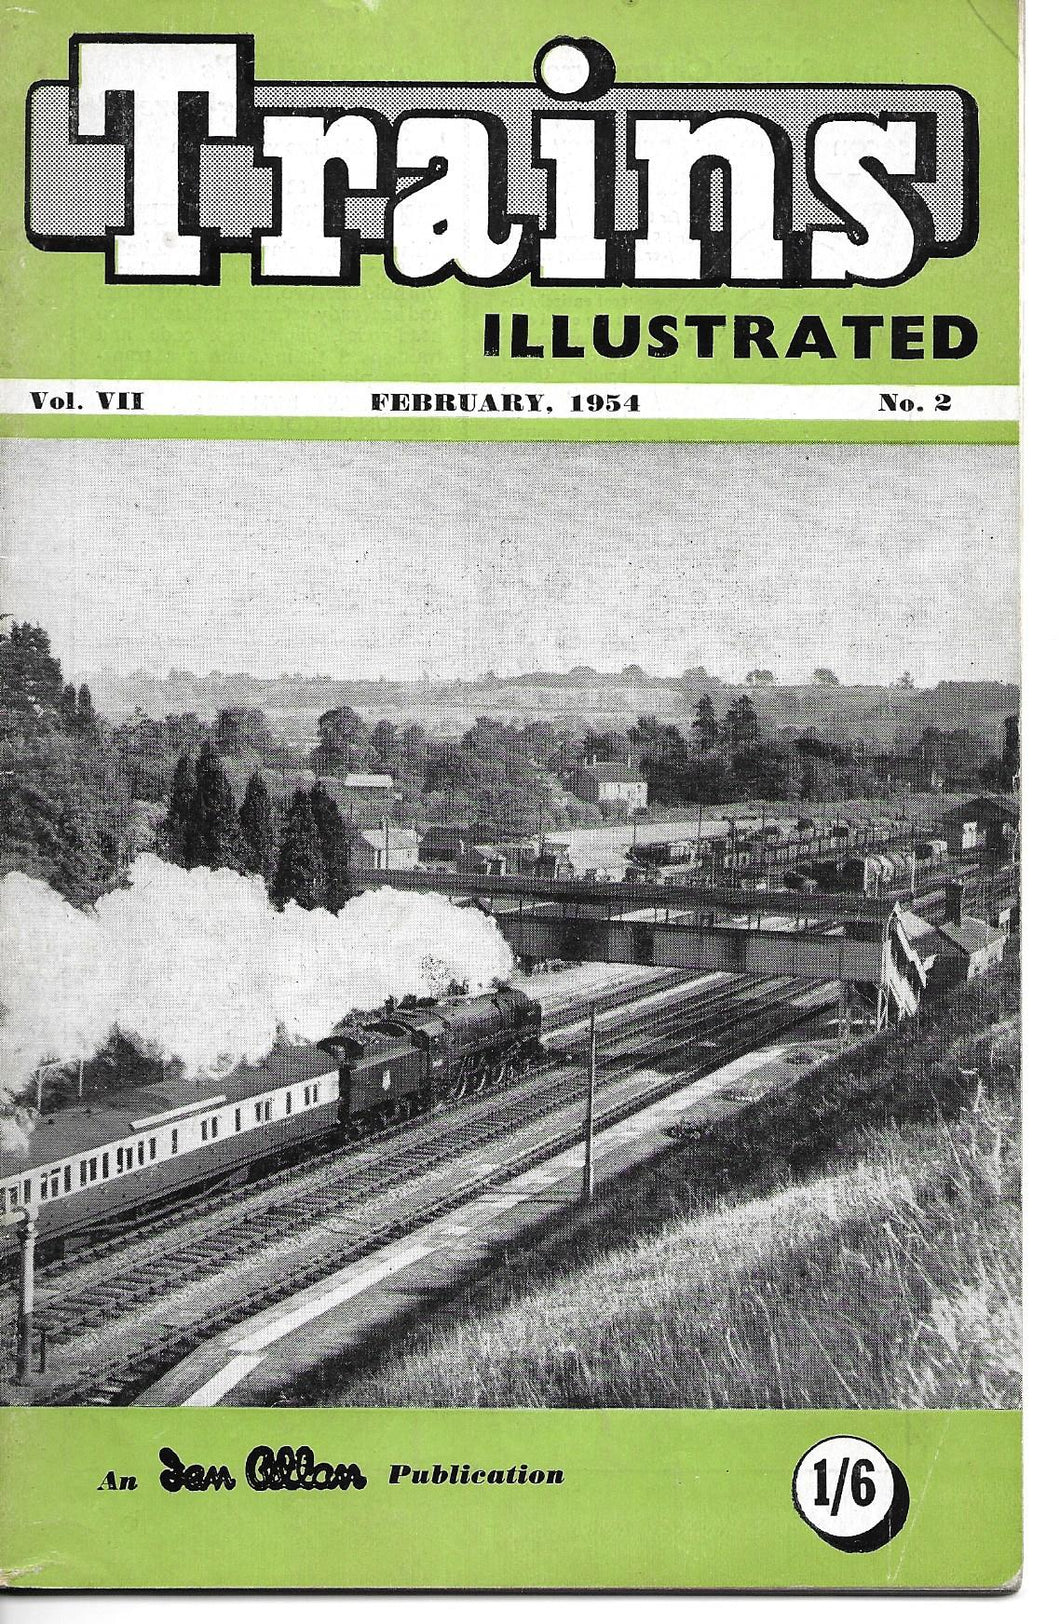 Trains Illustrated, Ian Allan, February 1954, Vol VII No 2.